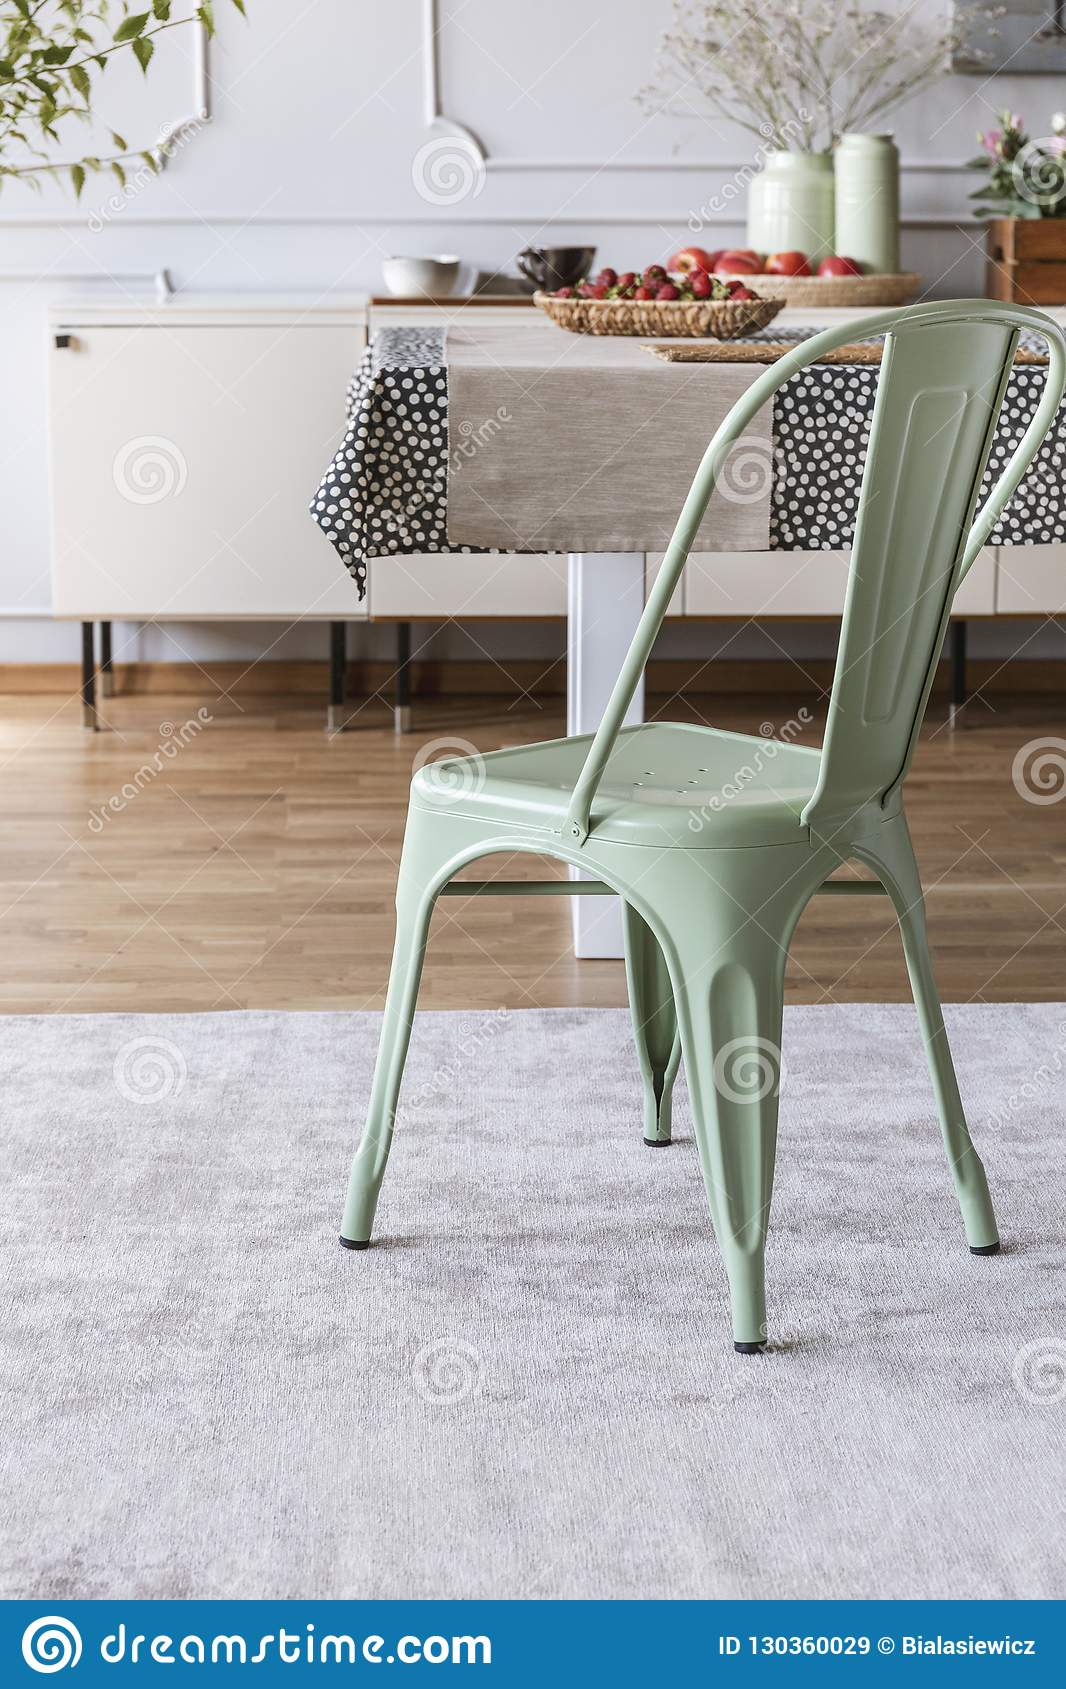 Mint Green Chair On Grey Carpet At Table In Rustic Dining Room Interior With Lamp And